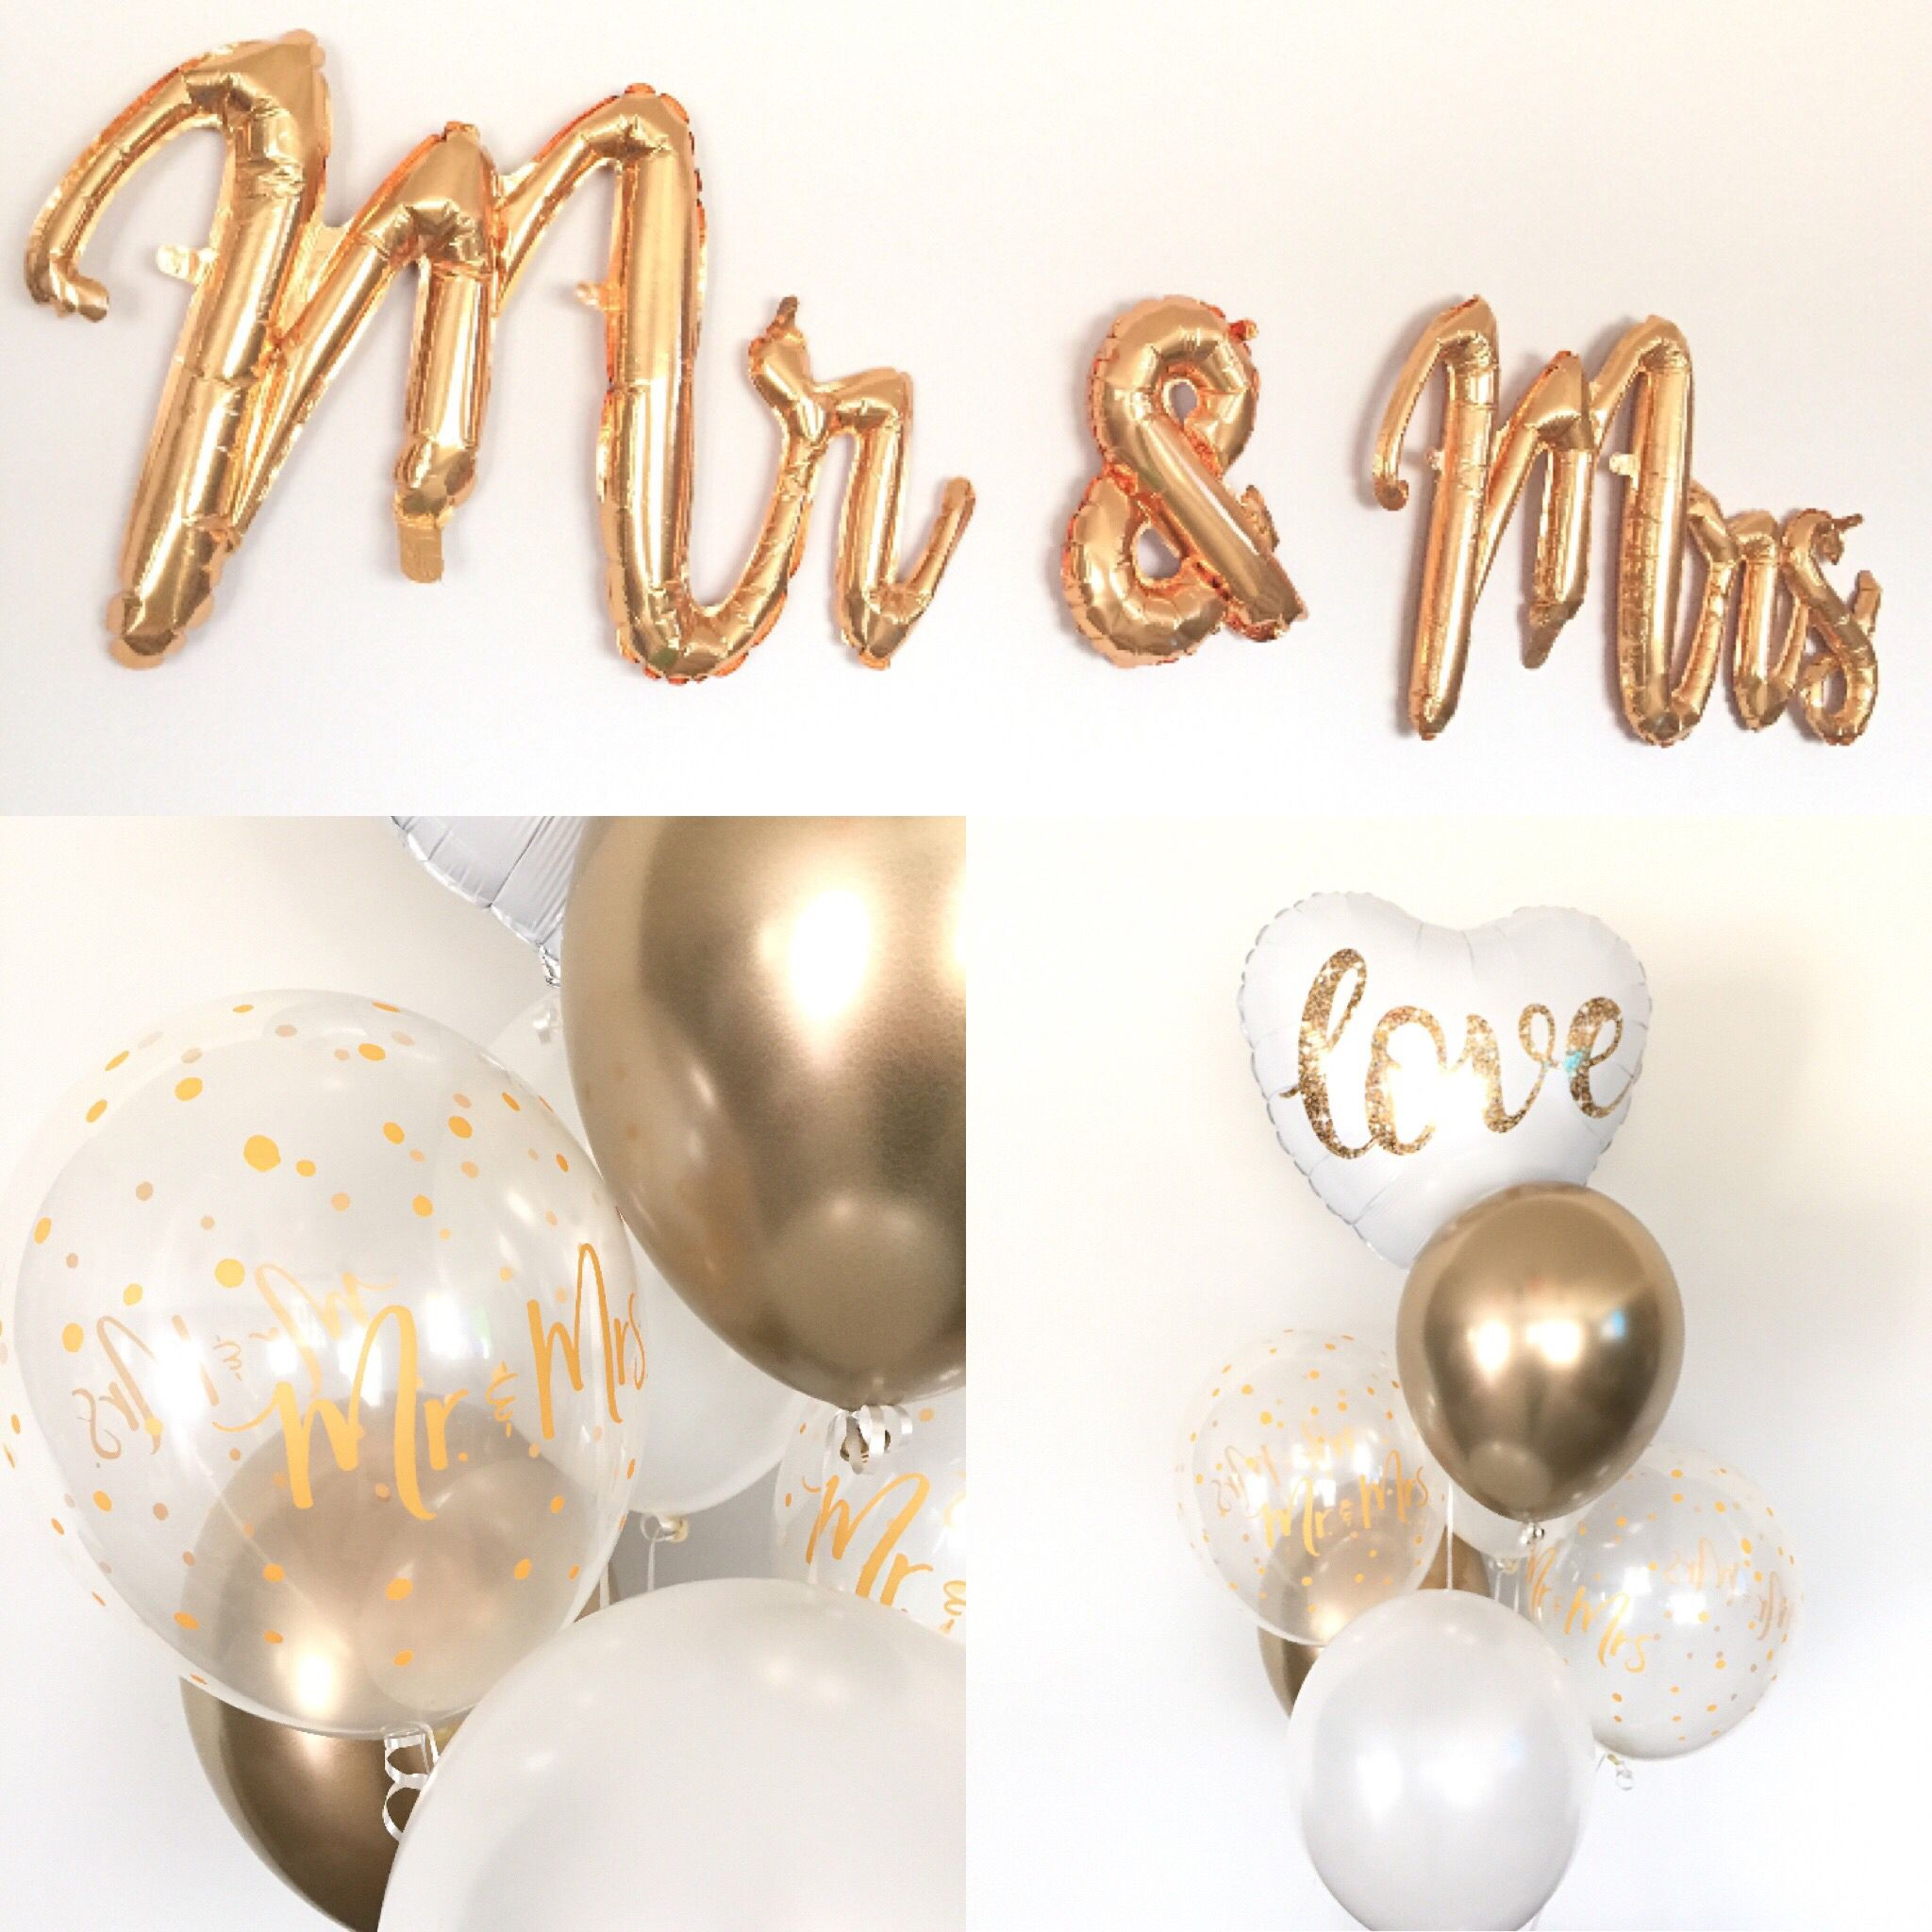 White and Gold Balloons Engagement Party Decor Mr & Mrs | Etsy